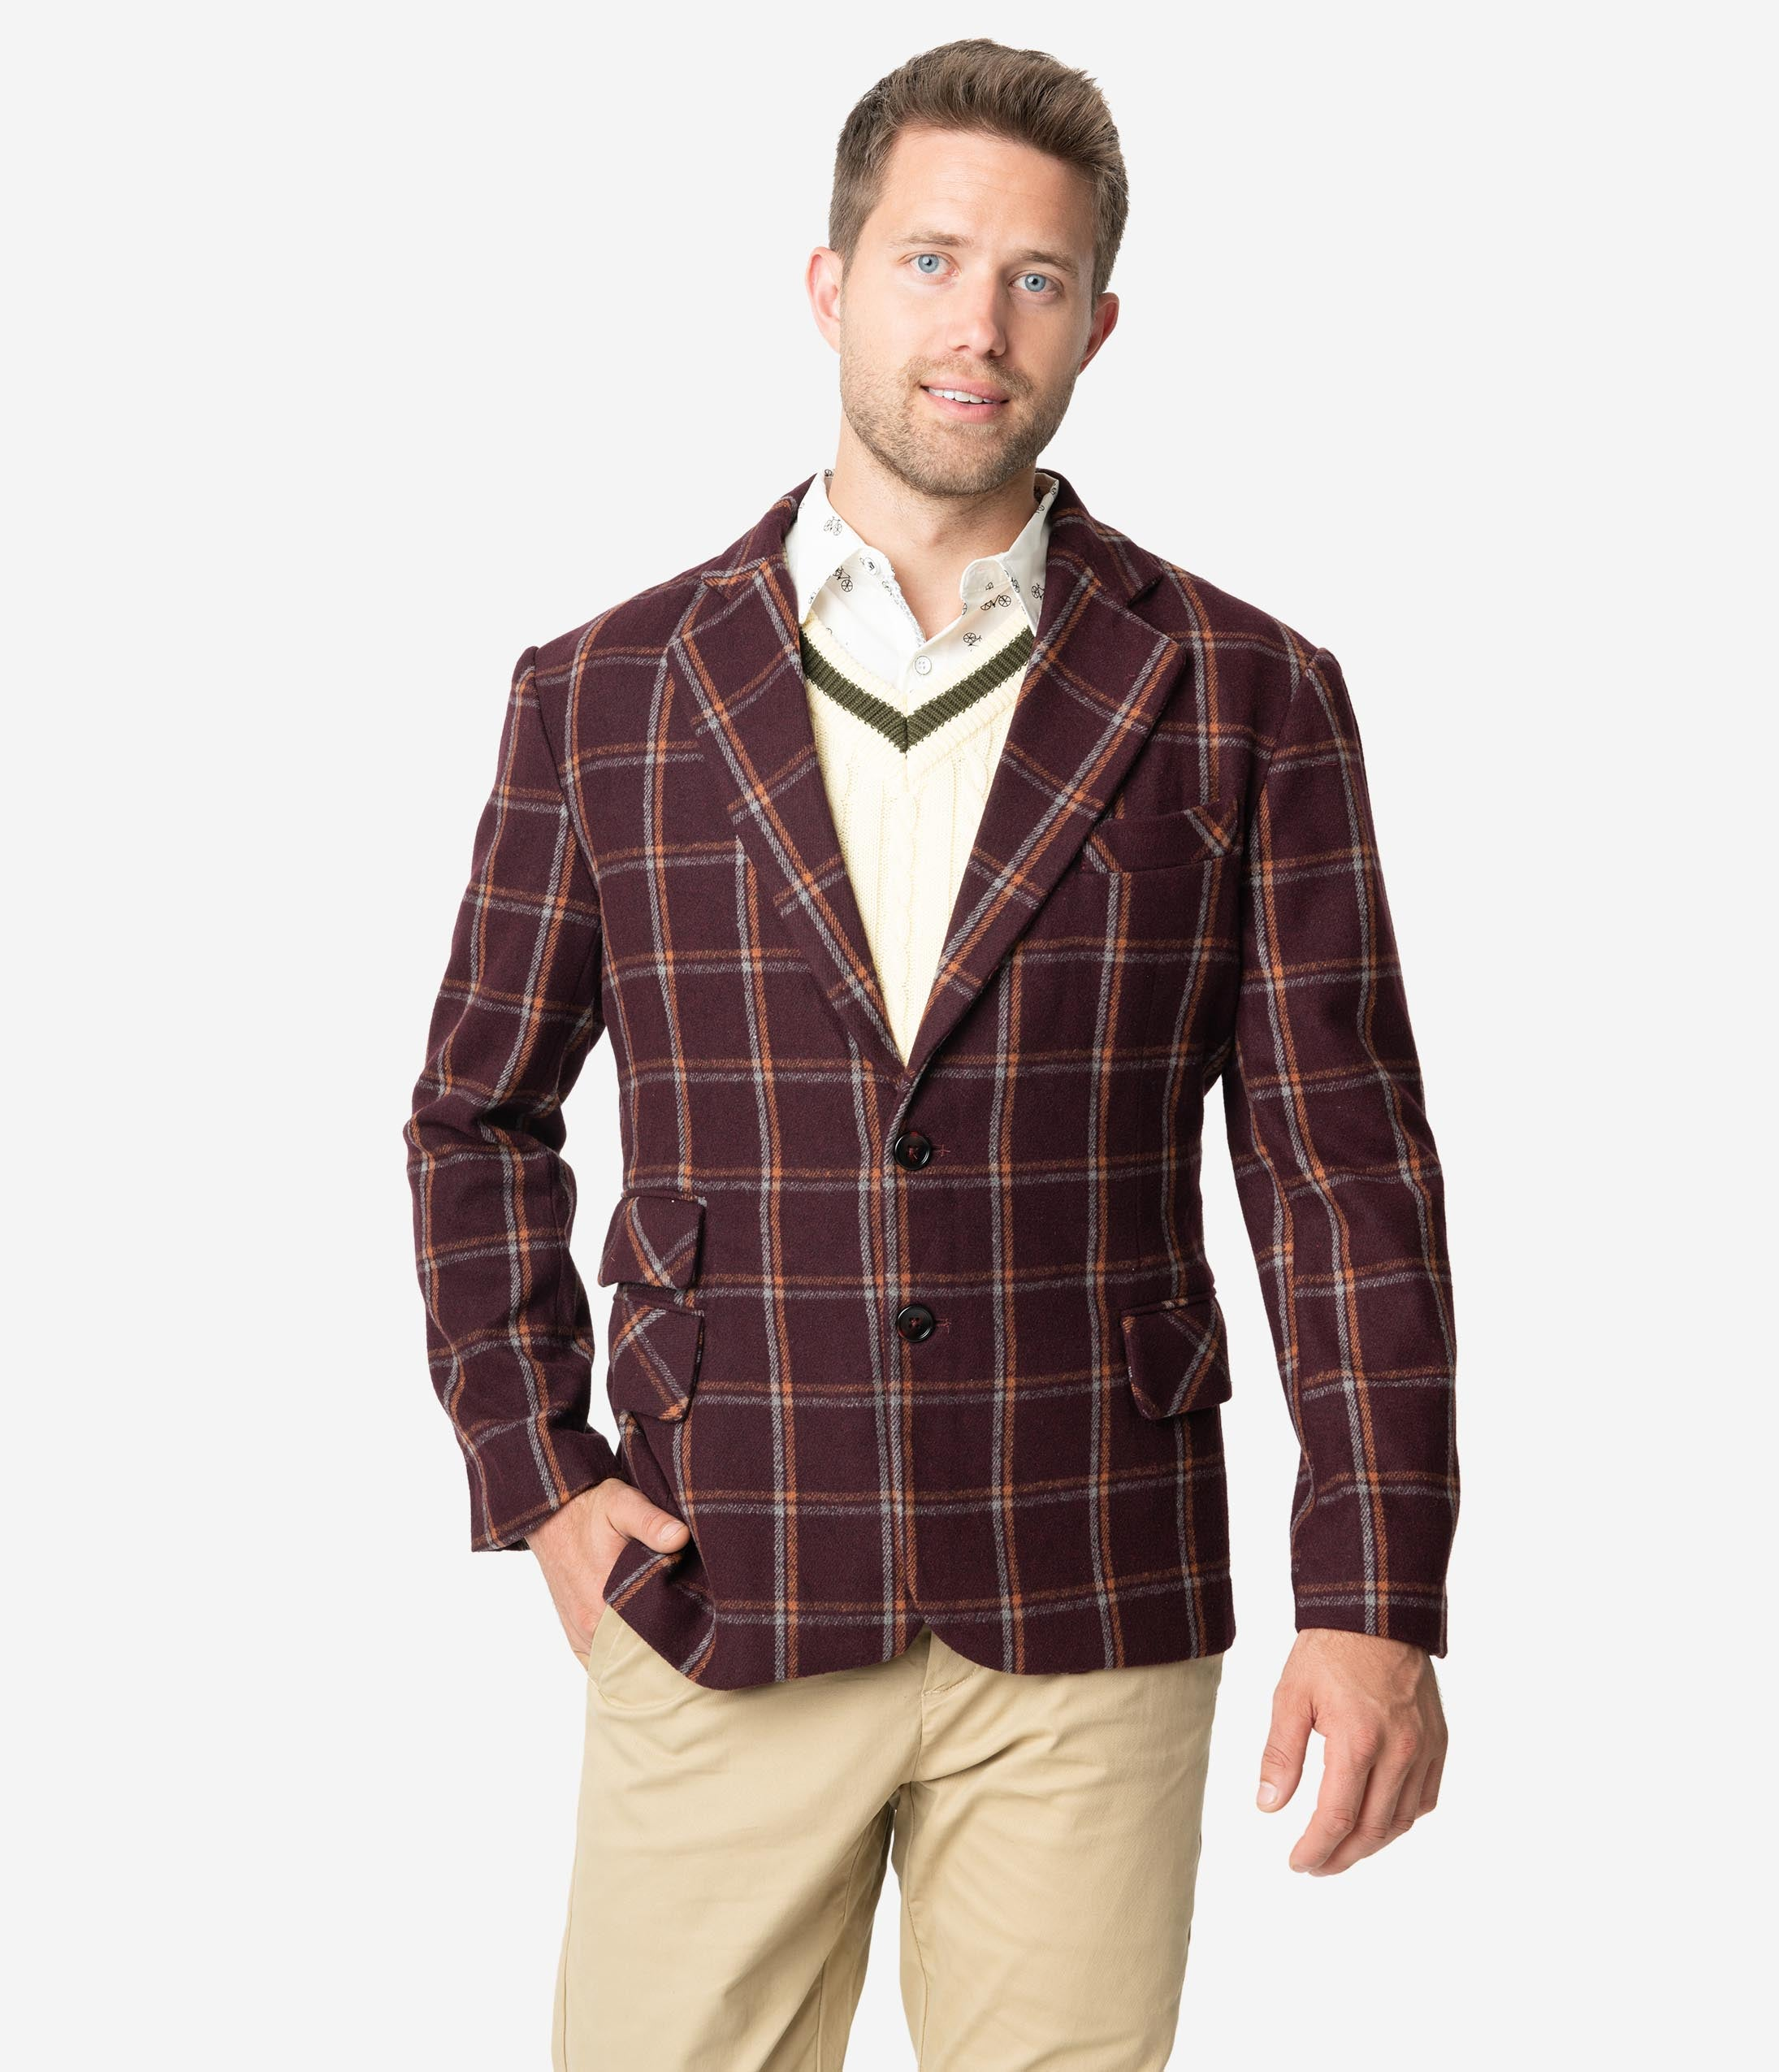 Men's Vintage Style Coats and Jackets Collectif 1960S Burgundy John Check Mens Blazer $78.00 AT vintagedancer.com